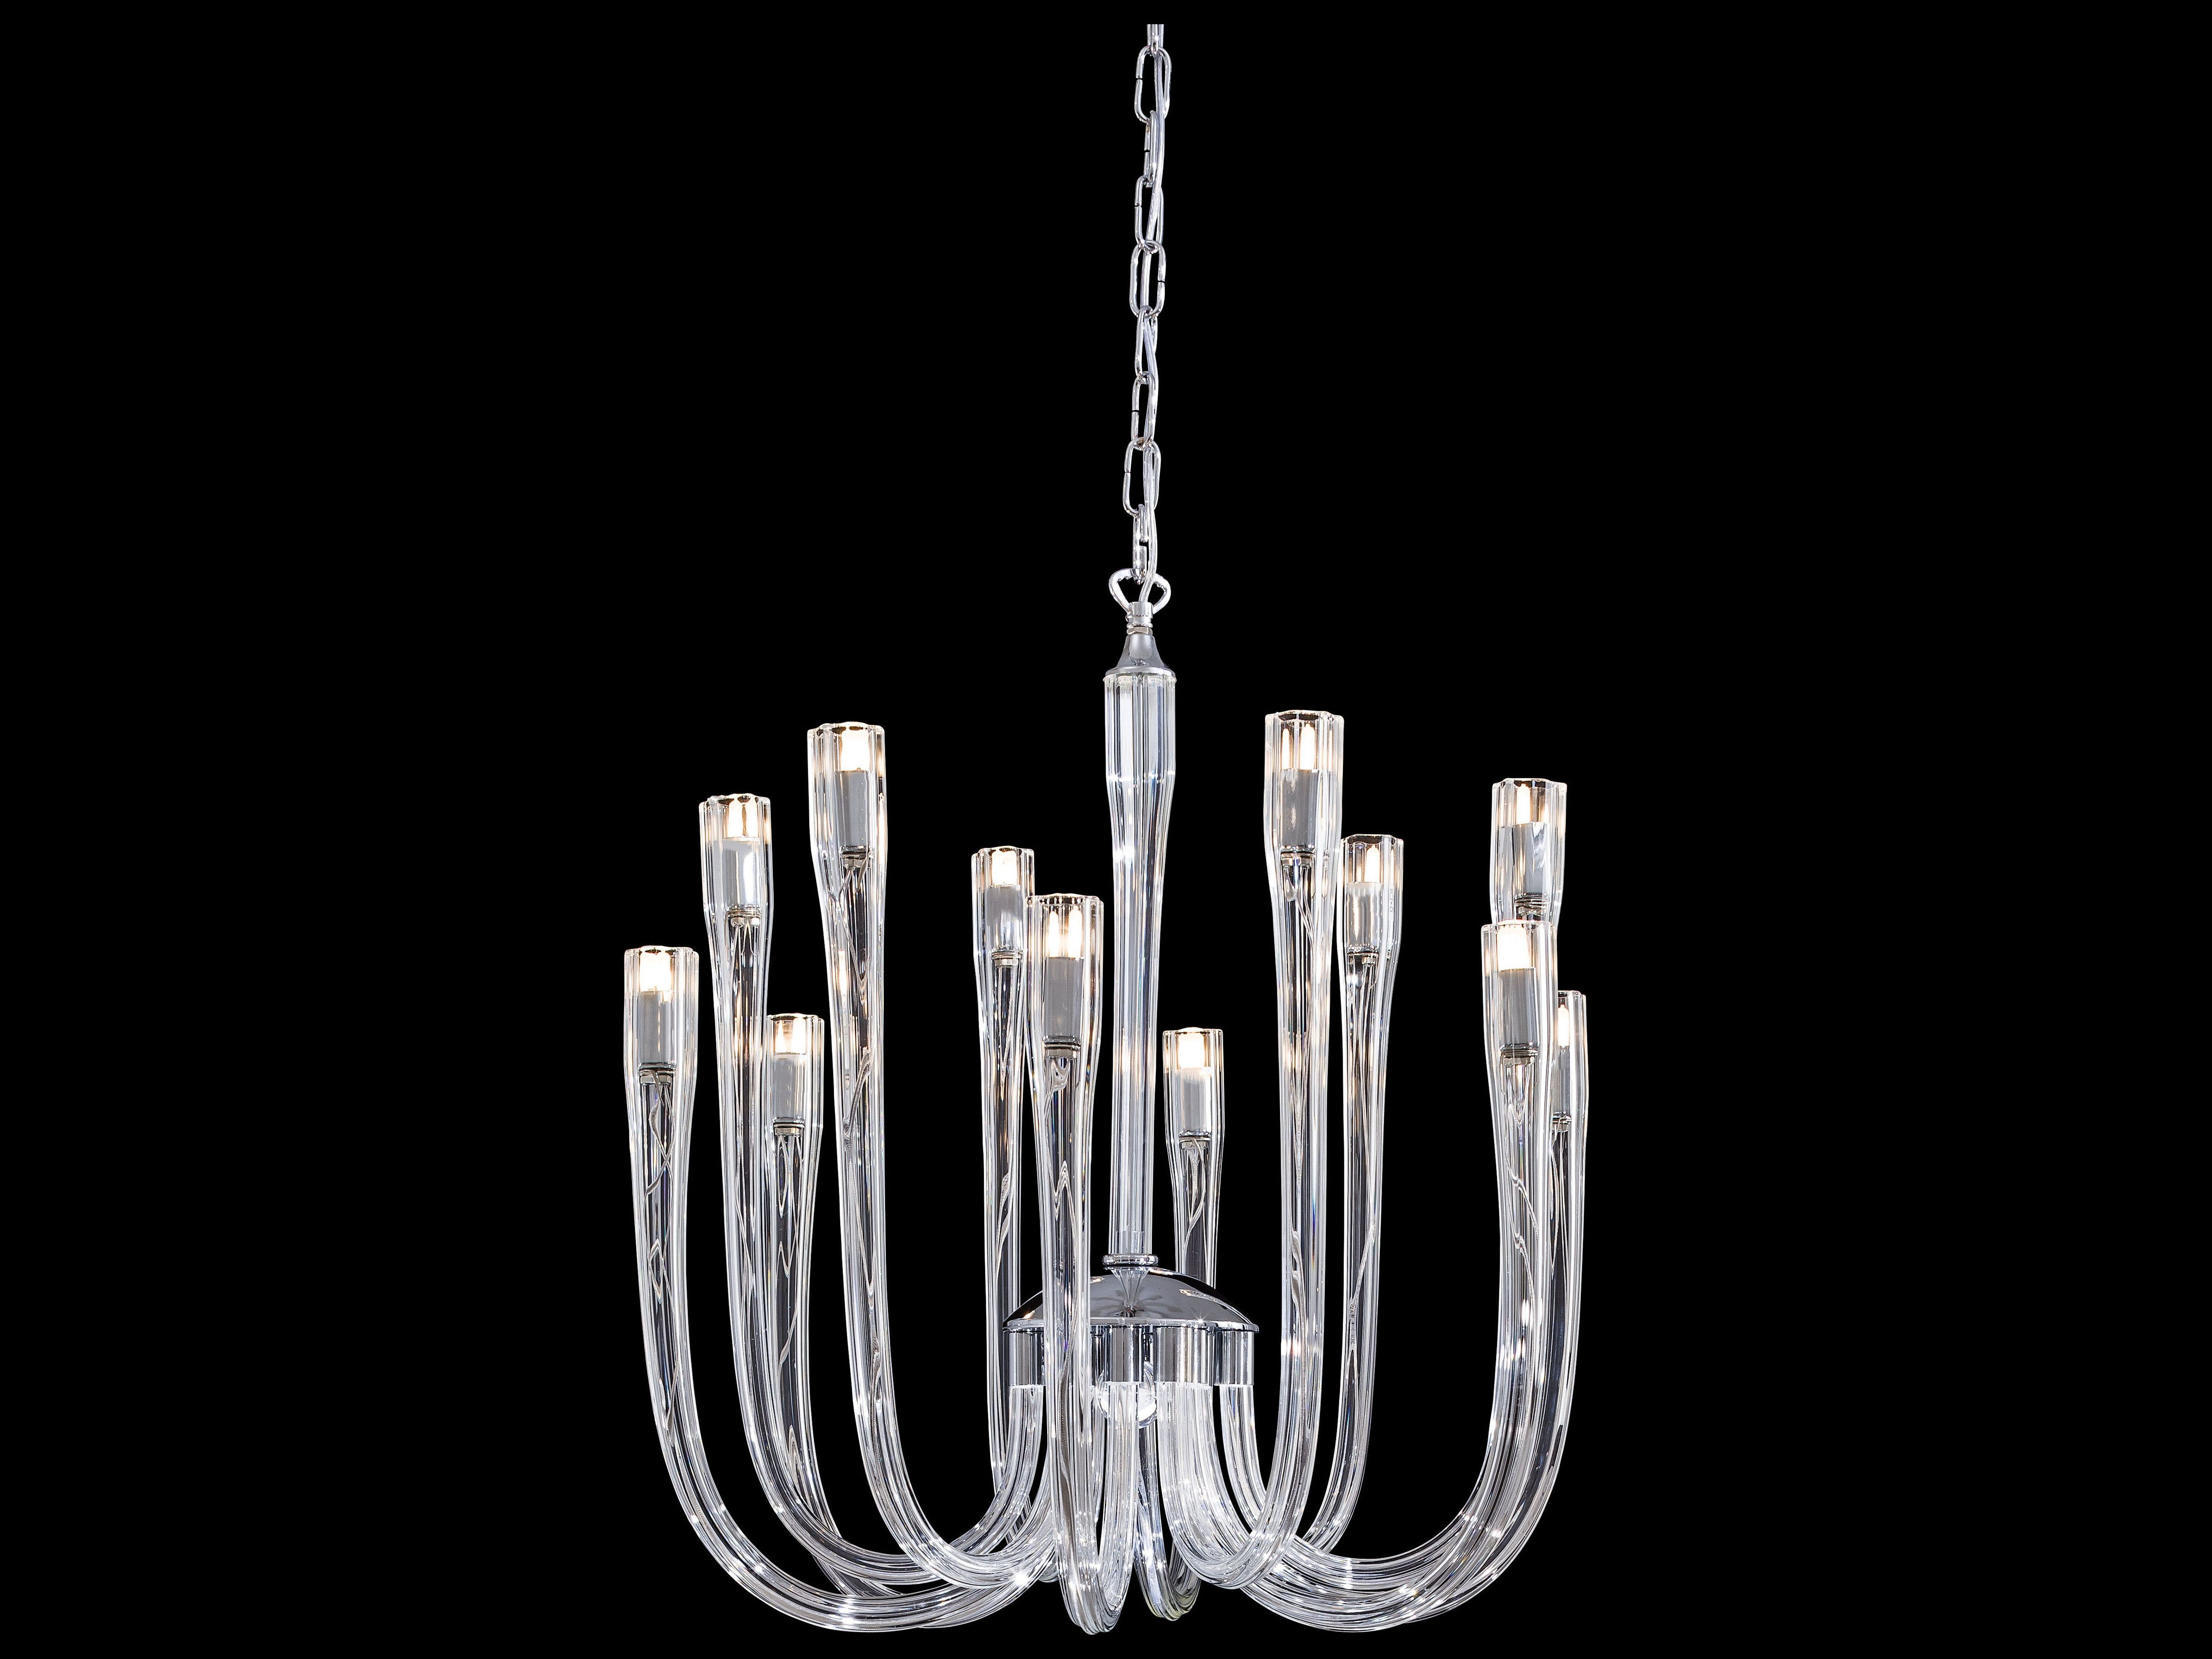 Metropolitan lighting chrome with clear glass 12 lights 22 wide metropolitan lighting chrome with clear glass 12 lights 22 wide chandelier arubaitofo Gallery